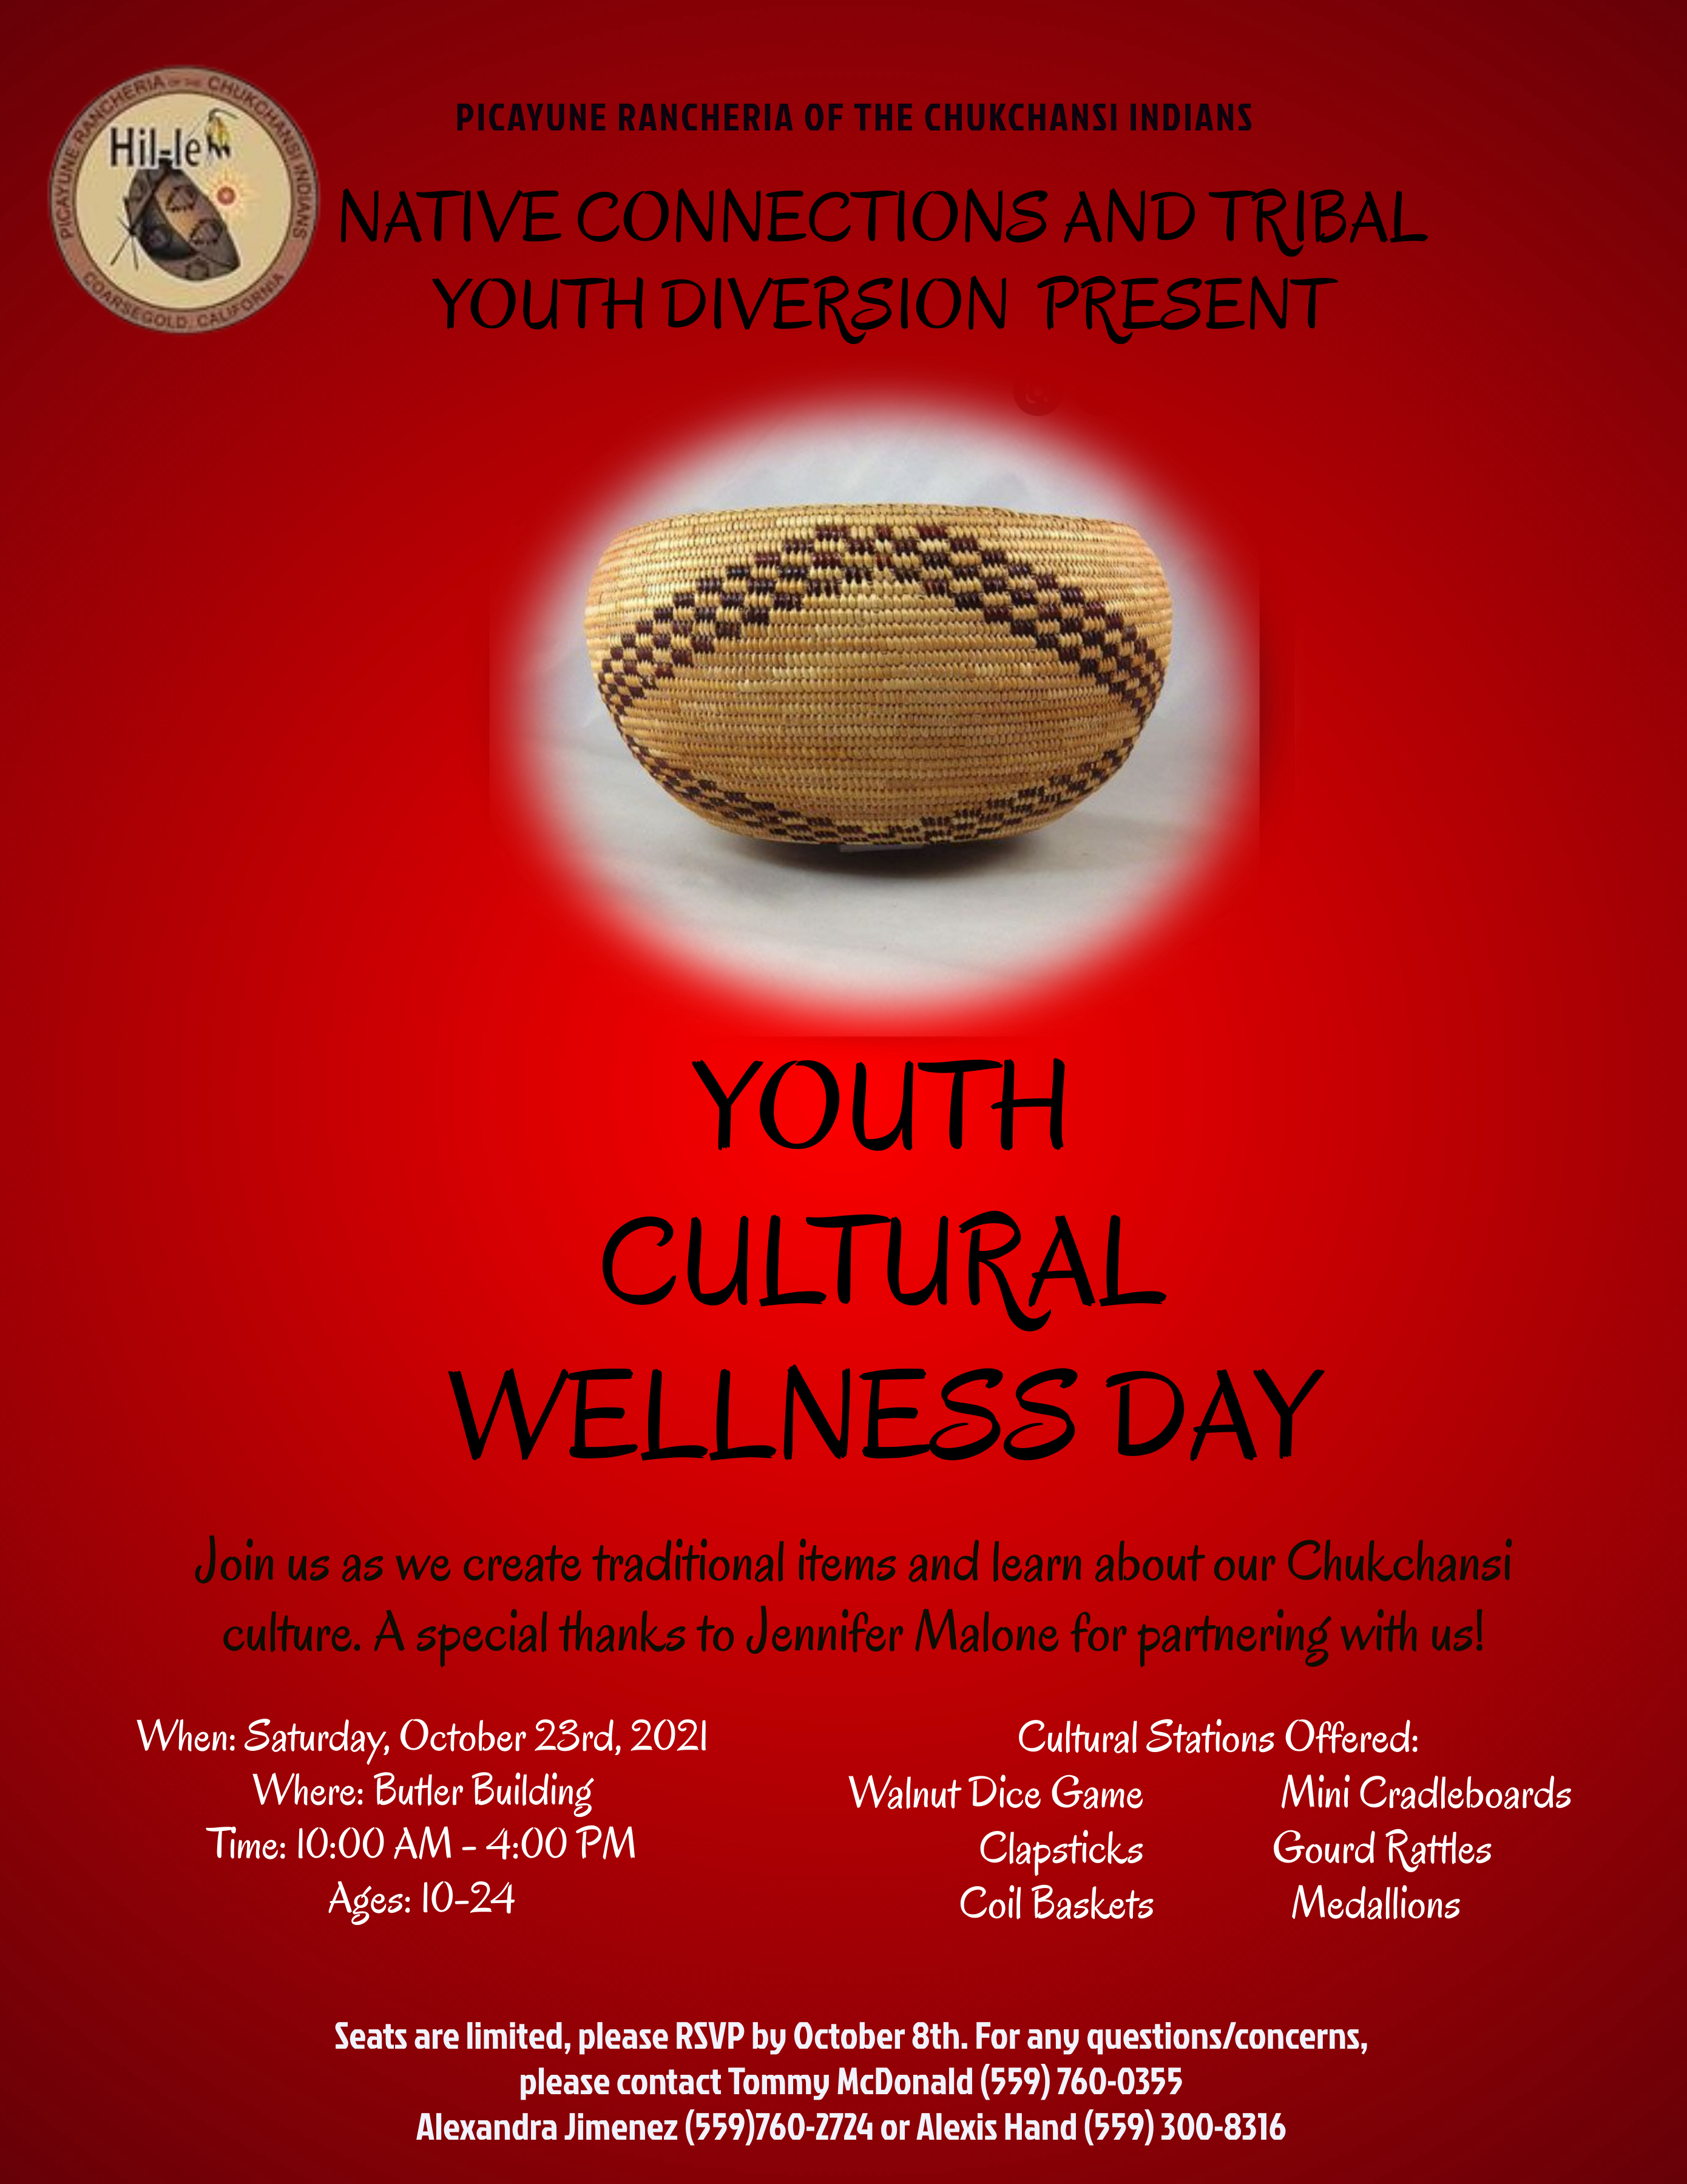 Youth Cultural Wellness Day @ Butler Building